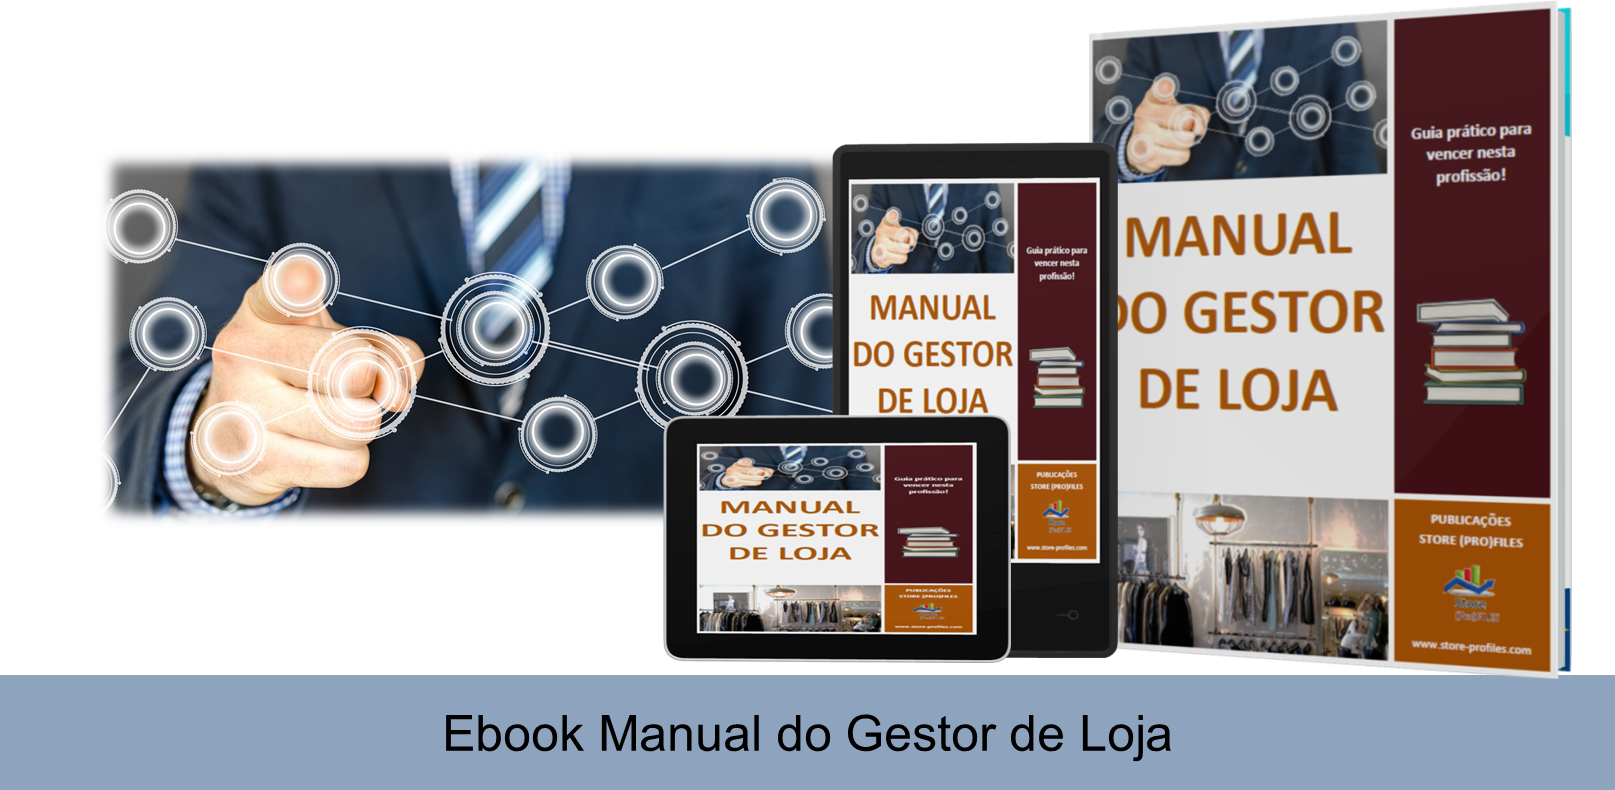 Ebook Manual do Gestor de Loja